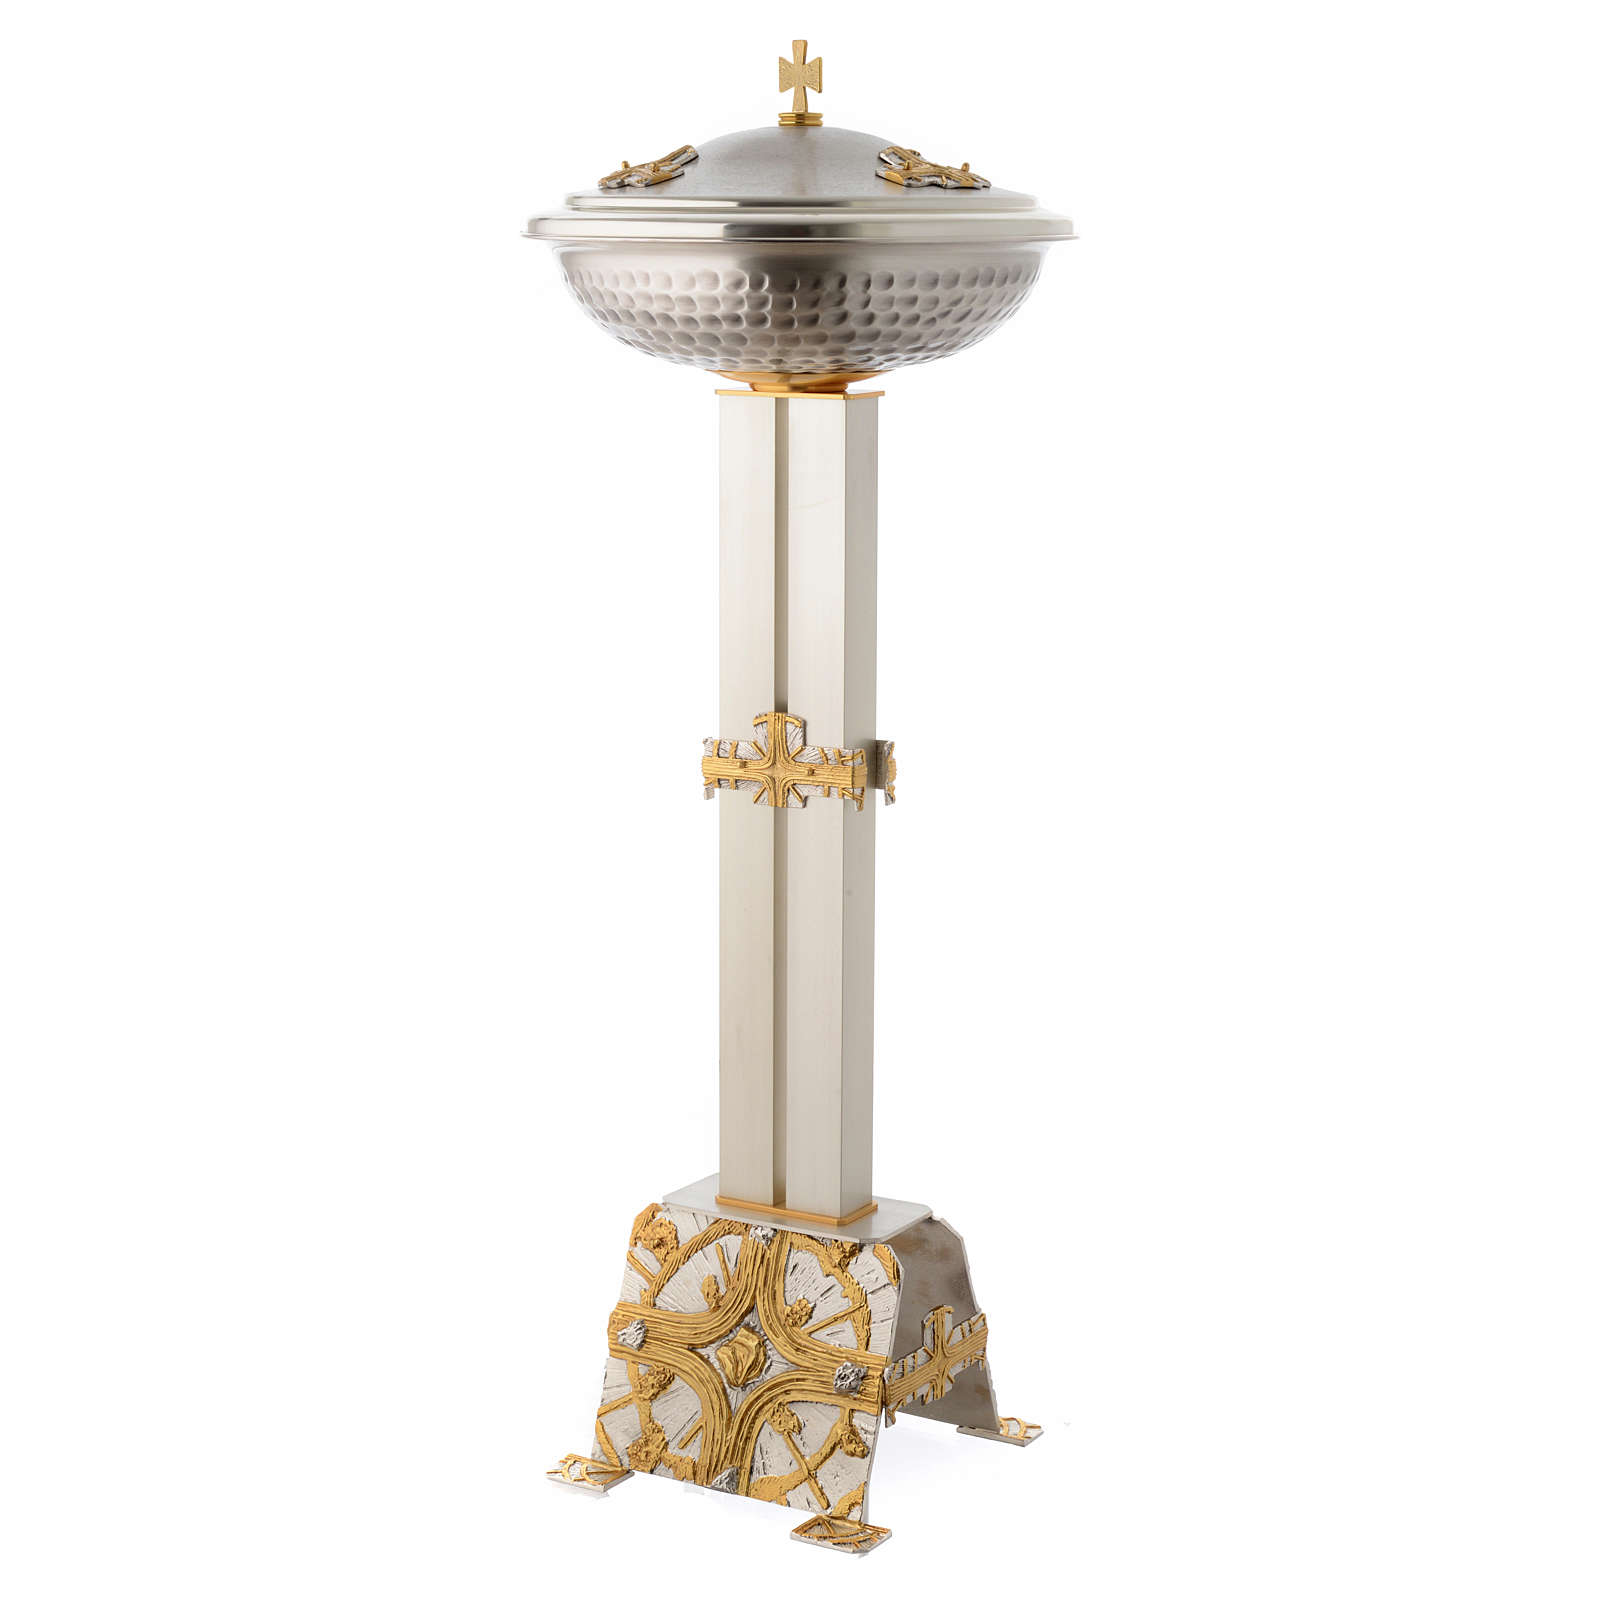 Baptismal font in gold and silver plated bronze 4